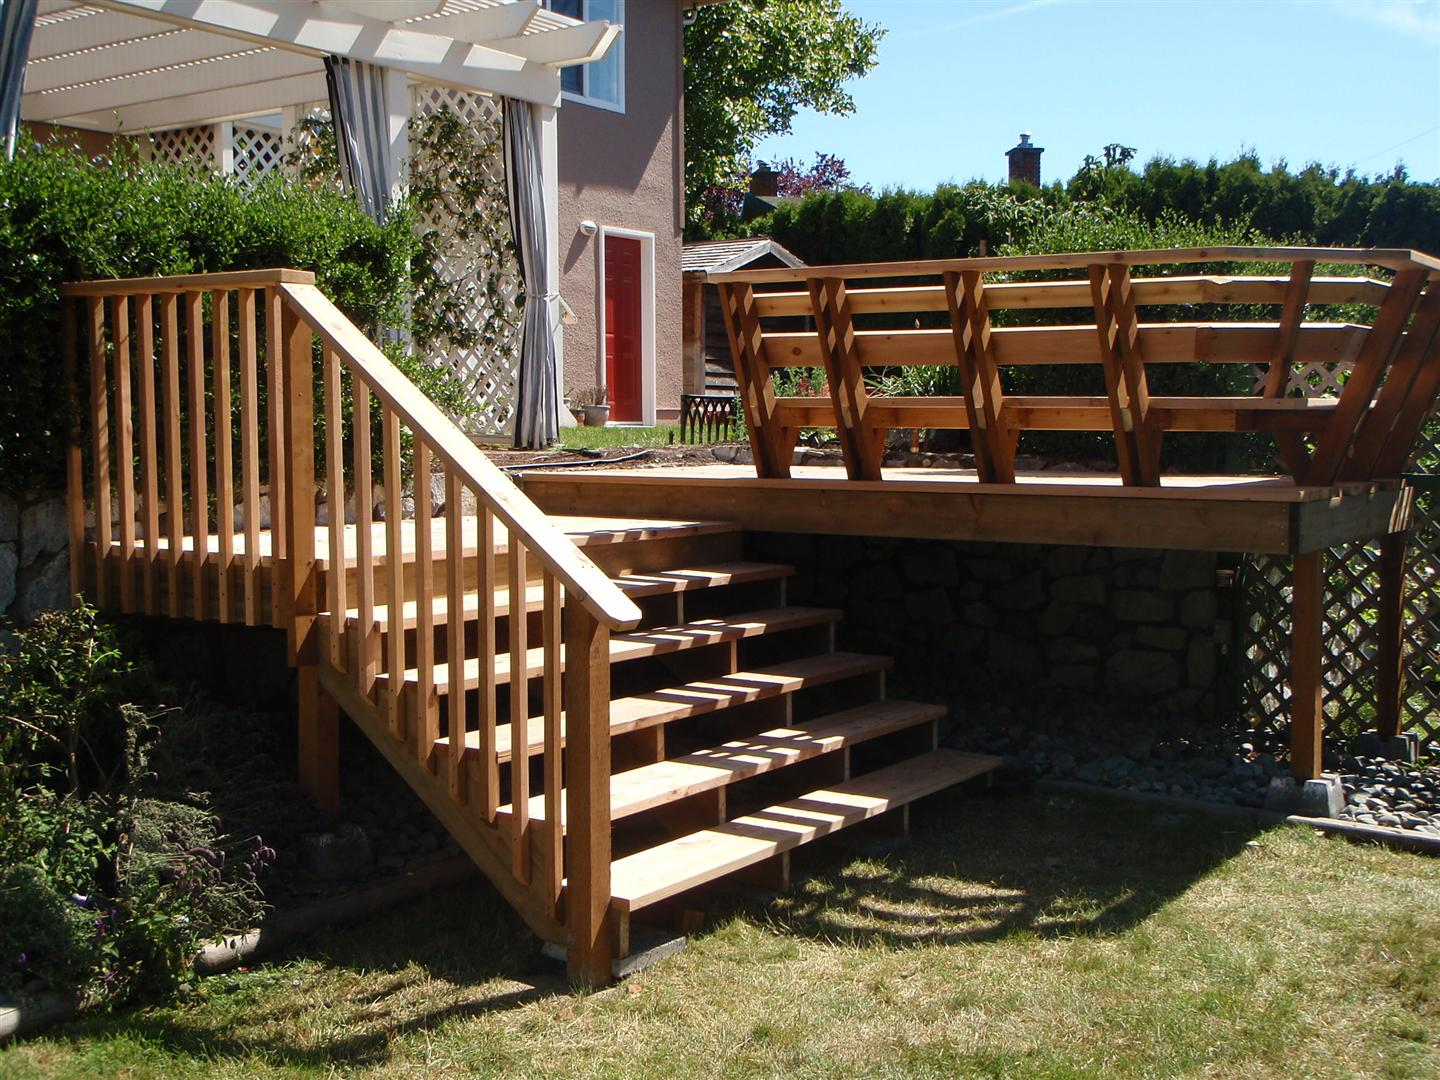 New Handrails for Porch Steps